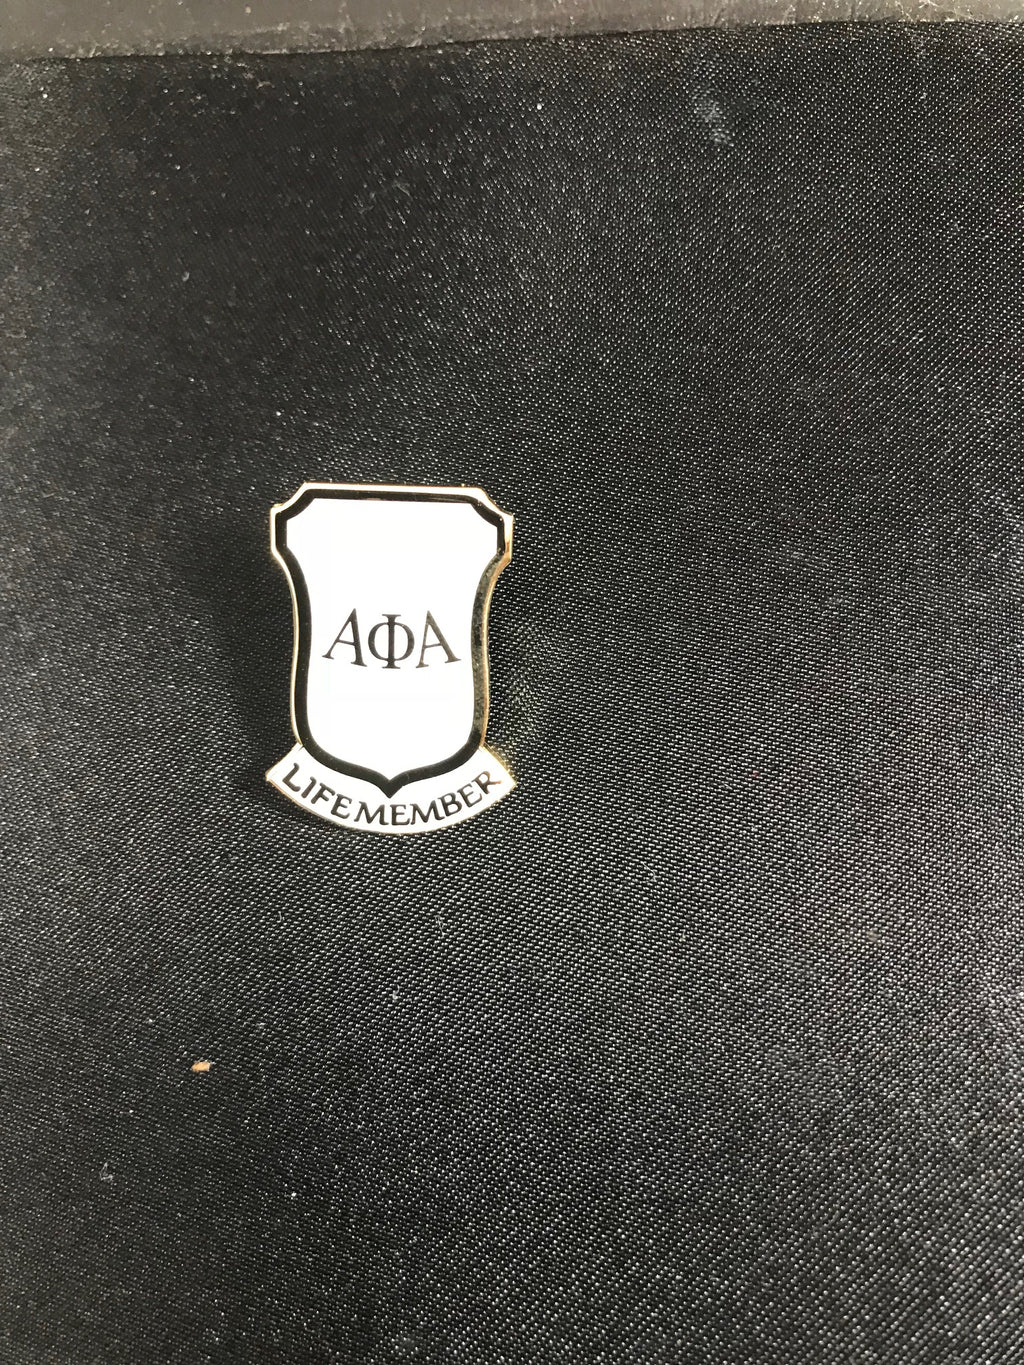 Life Member Lapel Pin(White)